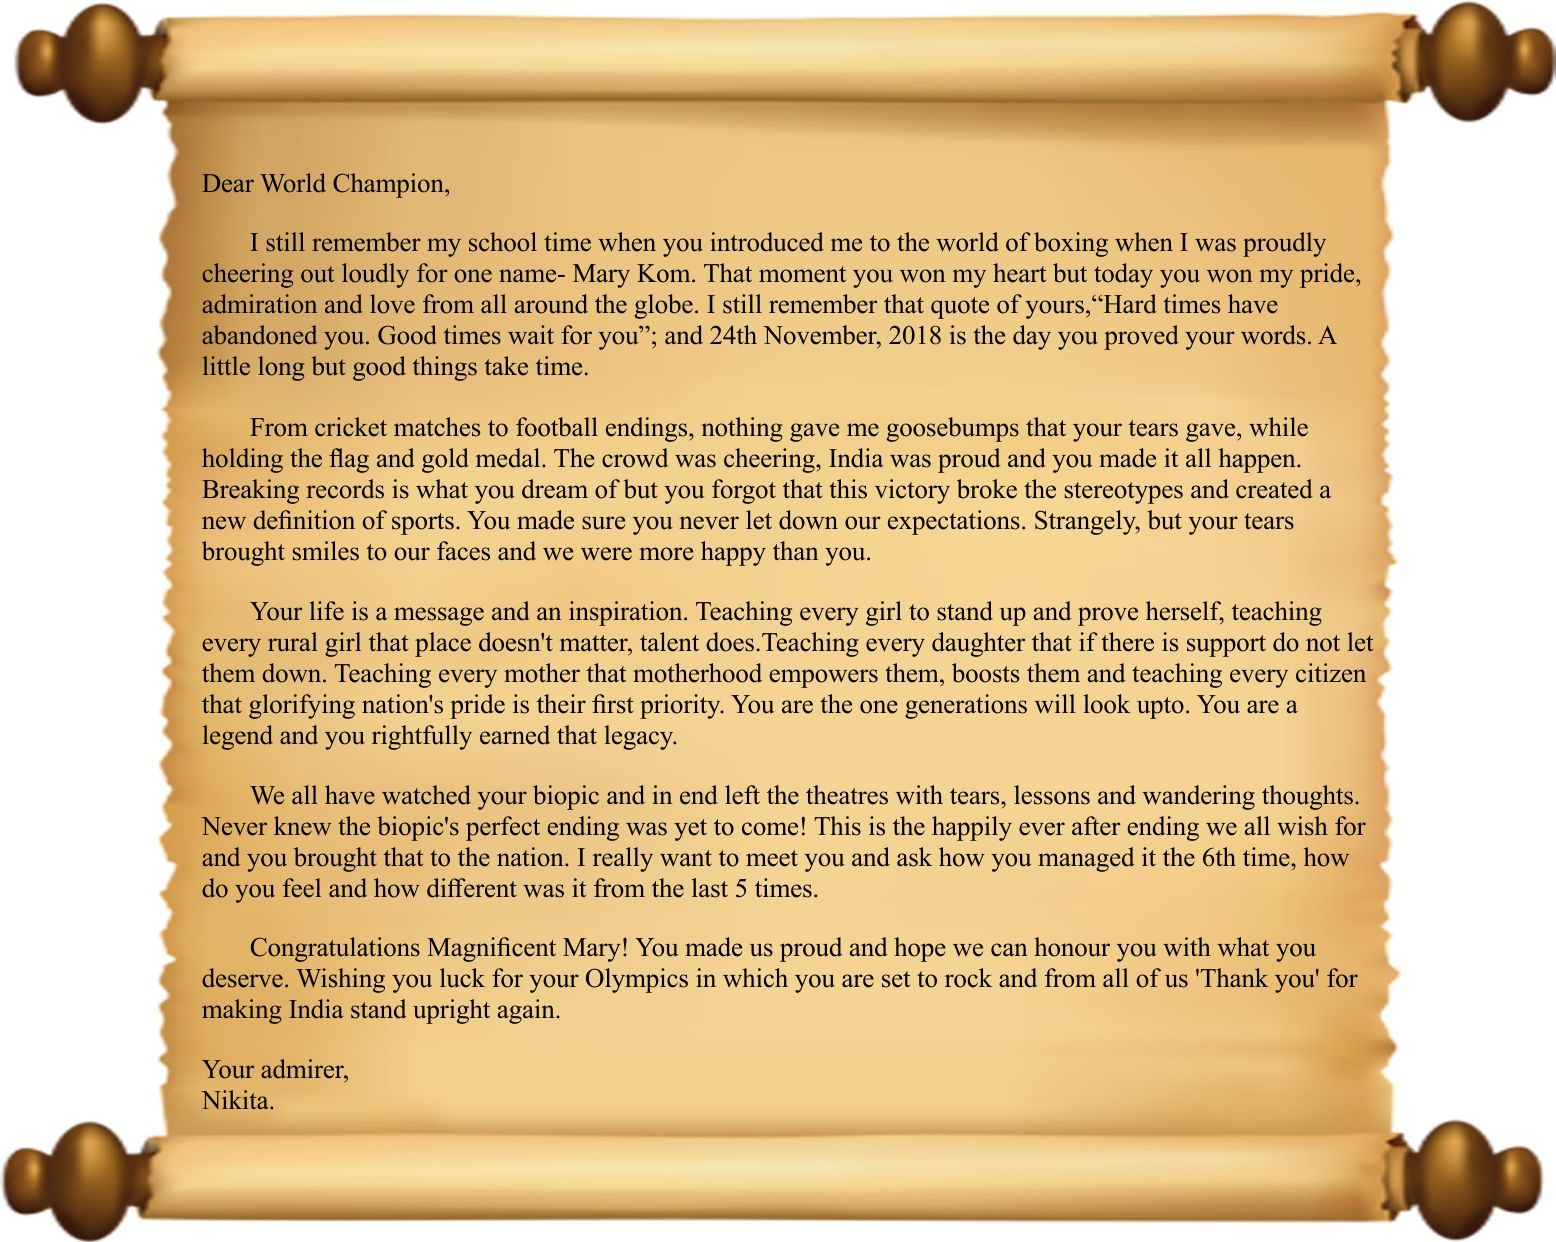 A heartfelt Letter to the champion- Mary Kom